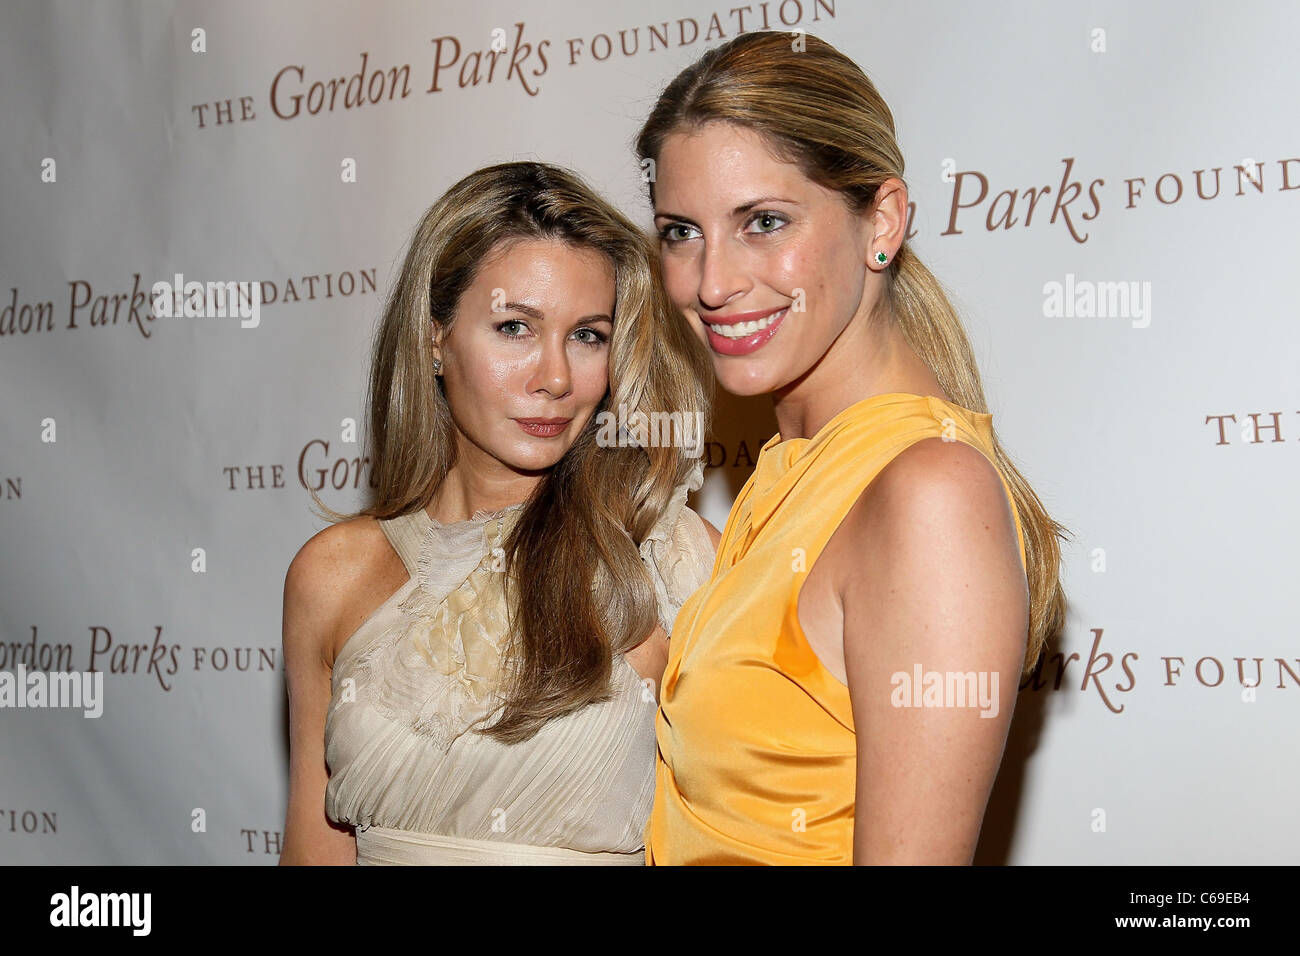 Julia Moore, Valerie Boster in attendance for The Gordon Parks Foundation Awards Dinner and Auction, Gotham Hall, - Stock Image